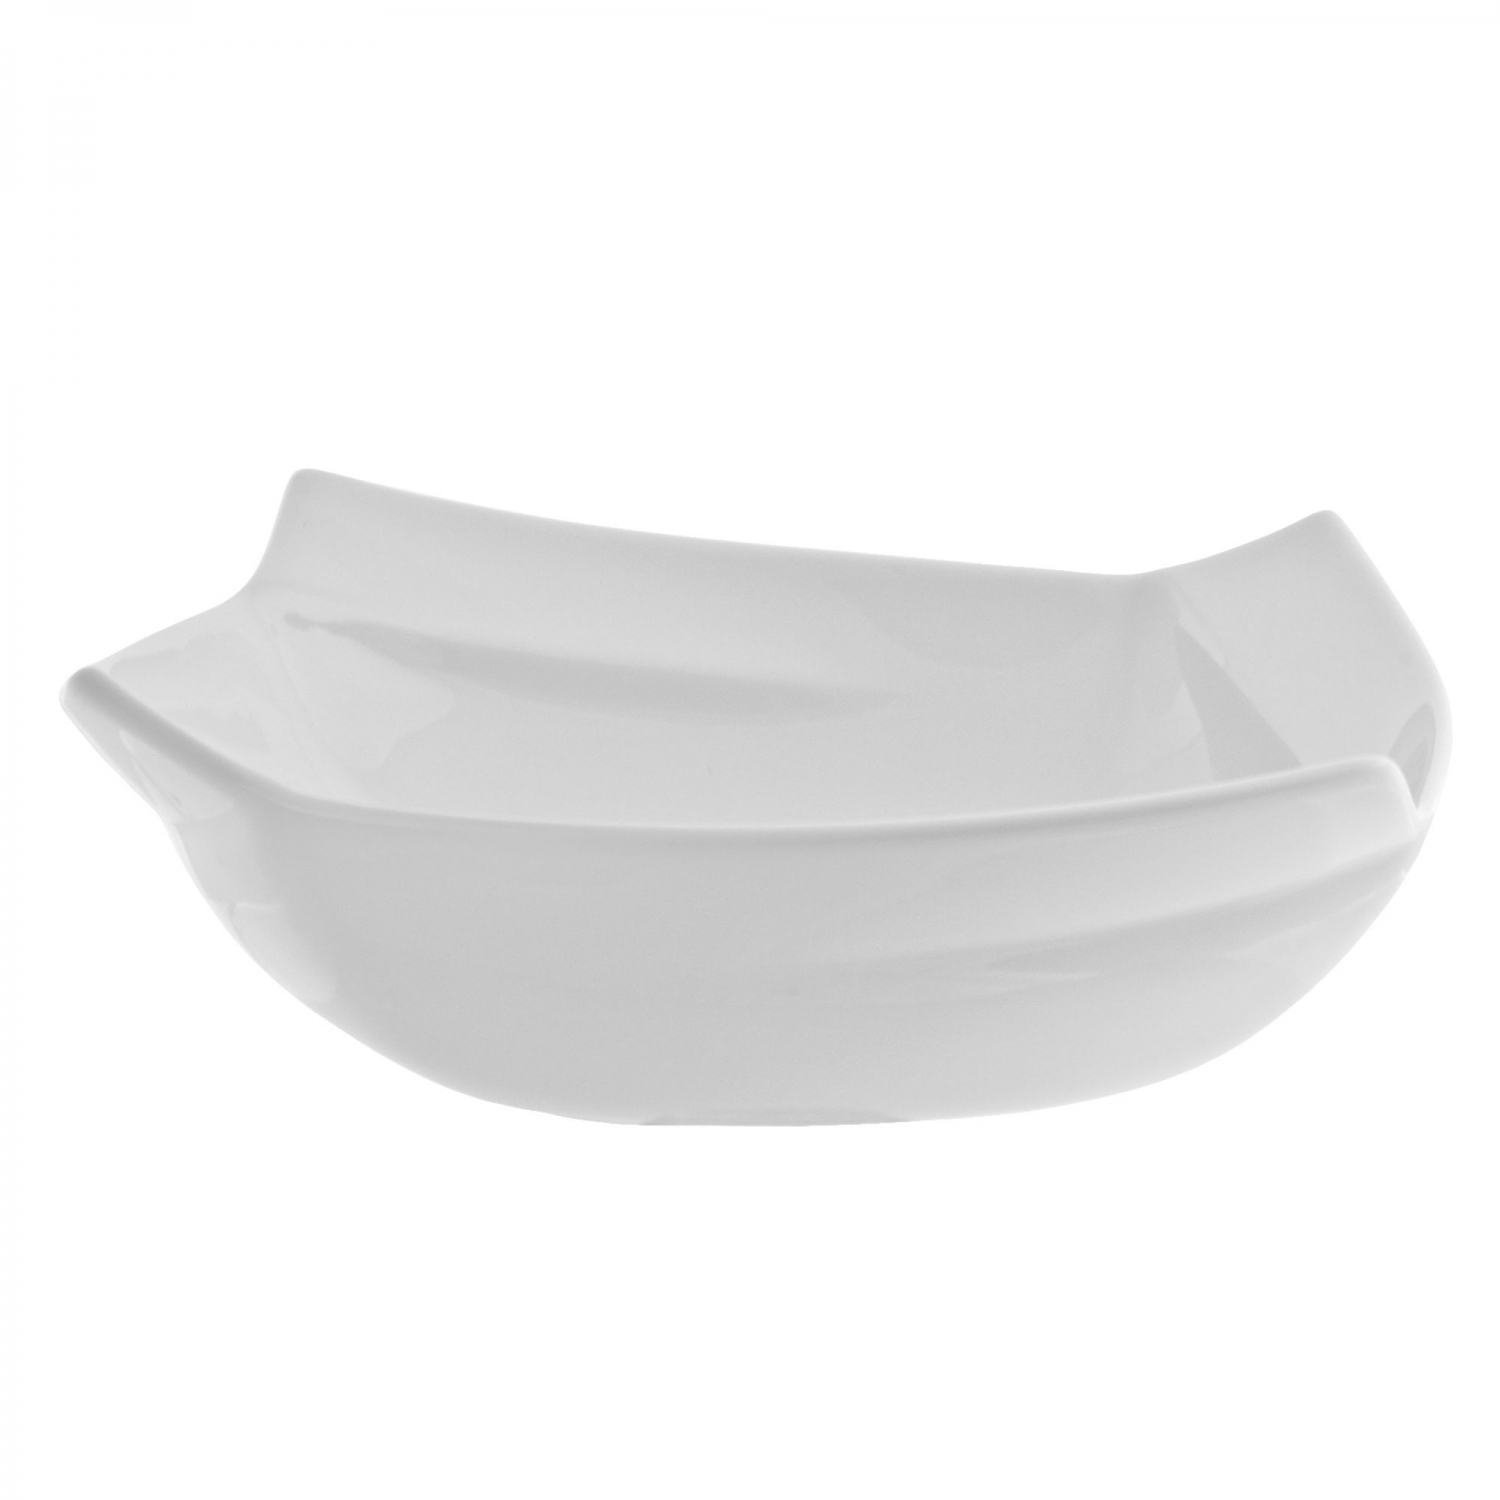 10 Strawberry Street NOU-6SQ 16 oz. Nouve Square White Vegetable Bowl